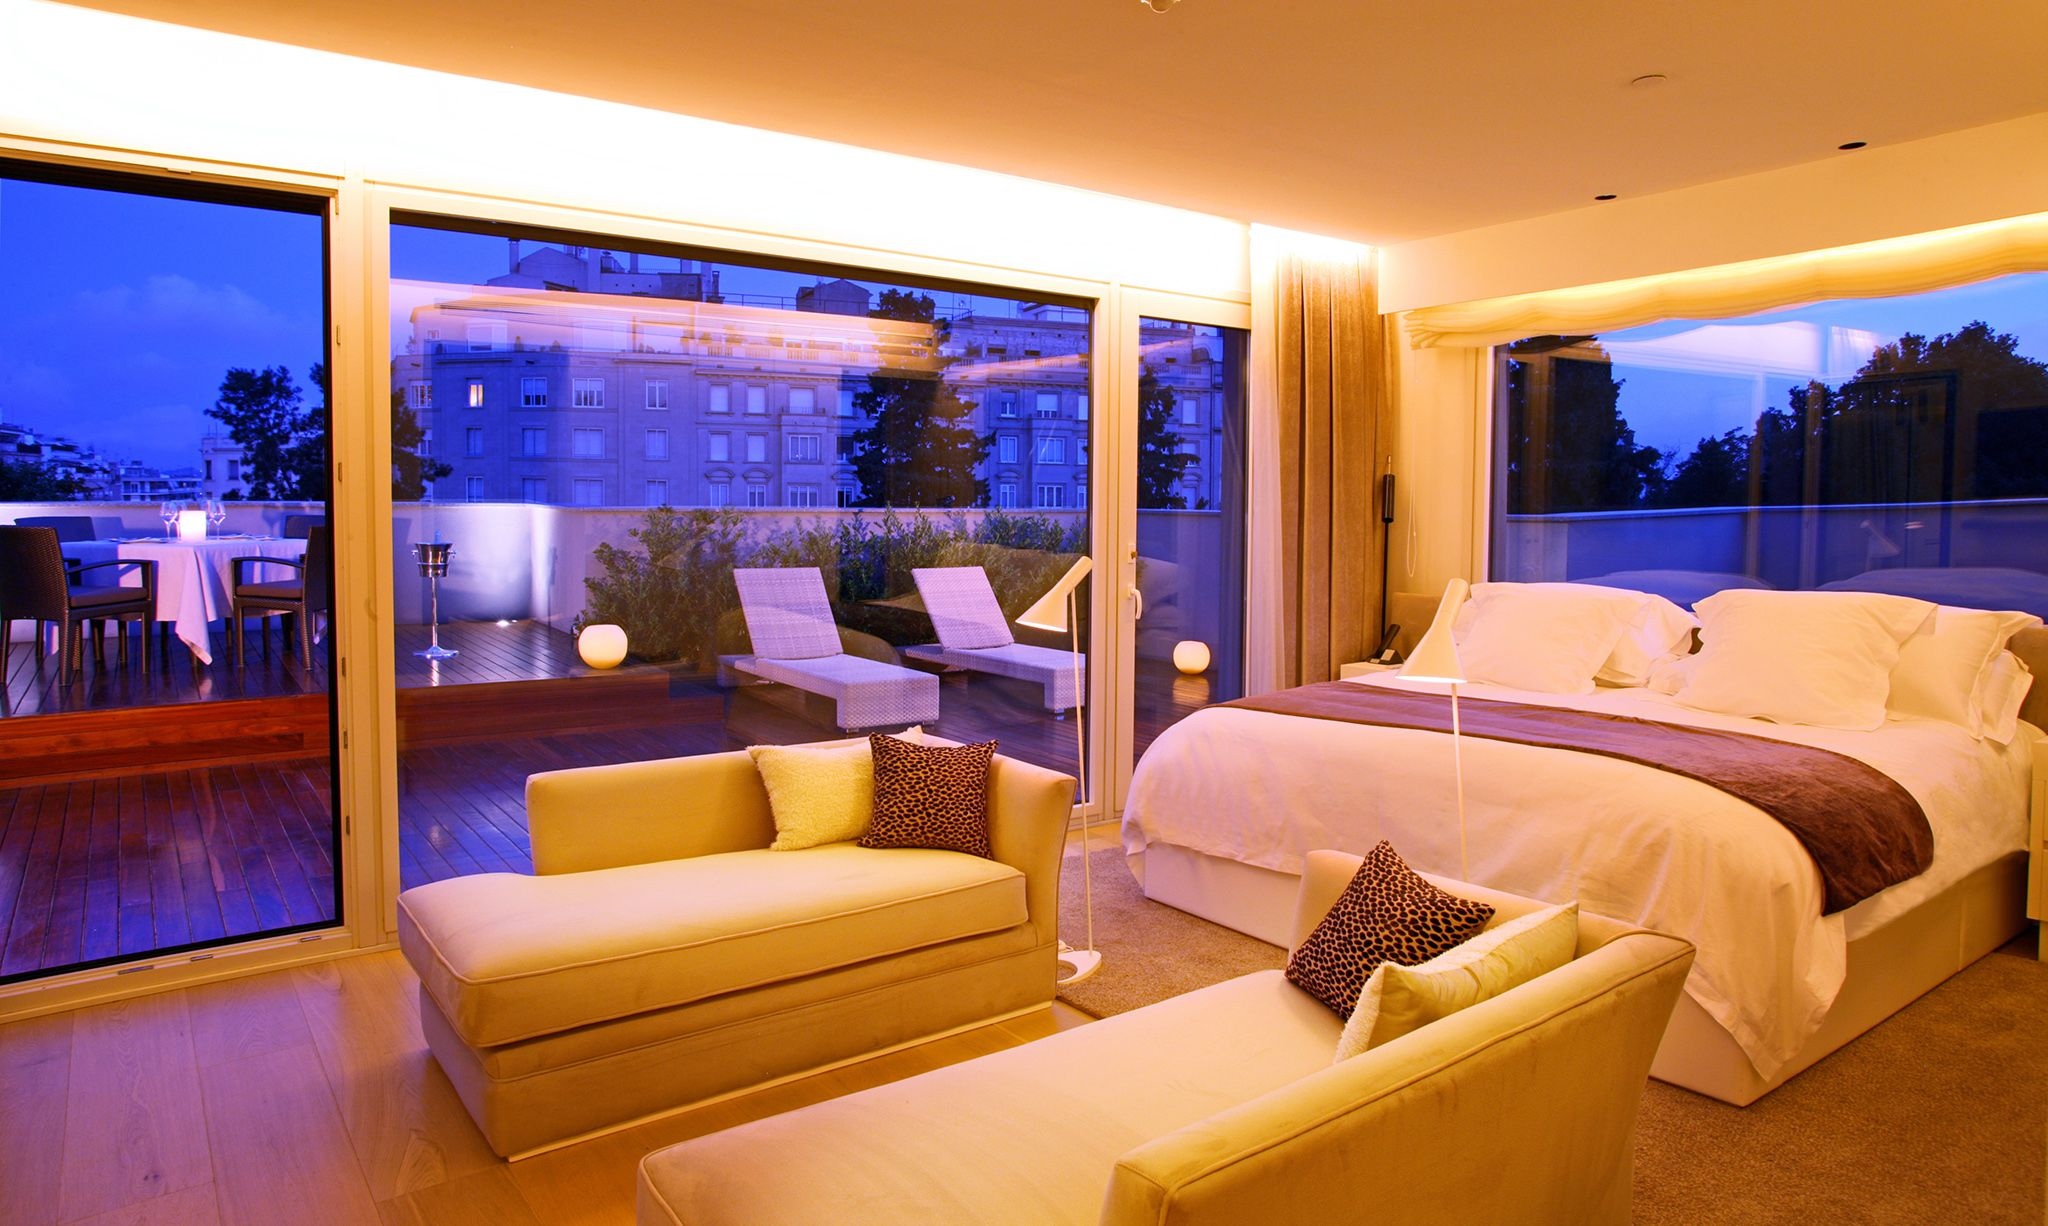 Beautiful Hotel rooms. Hotels next to Amsterdam Airport are most eye ...